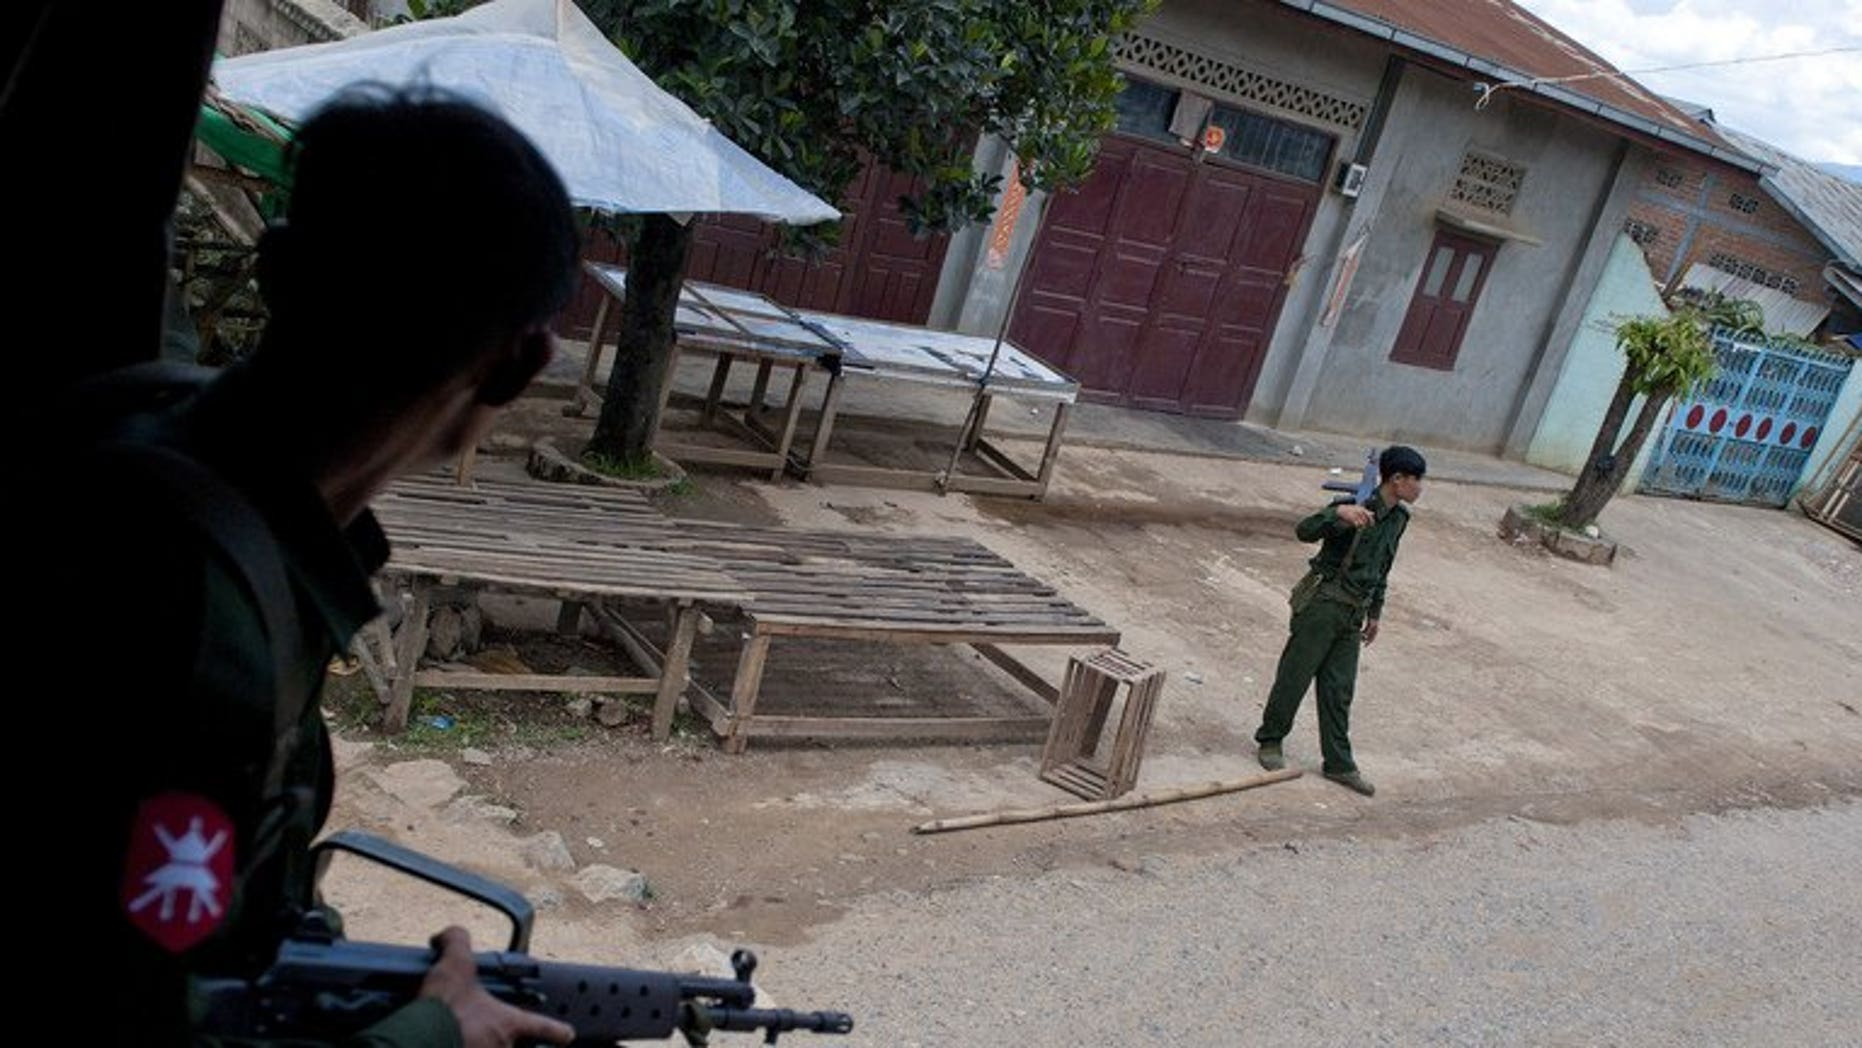 Soldiers stand guard after riots broke out in Lashio, eastern Myanmar, on May 30, 2013. Myanmar has discharged 42 children and young people from its armed forces, UN agencies has said, urging increased efforts to free child soldiers as the country emerges from military rule.